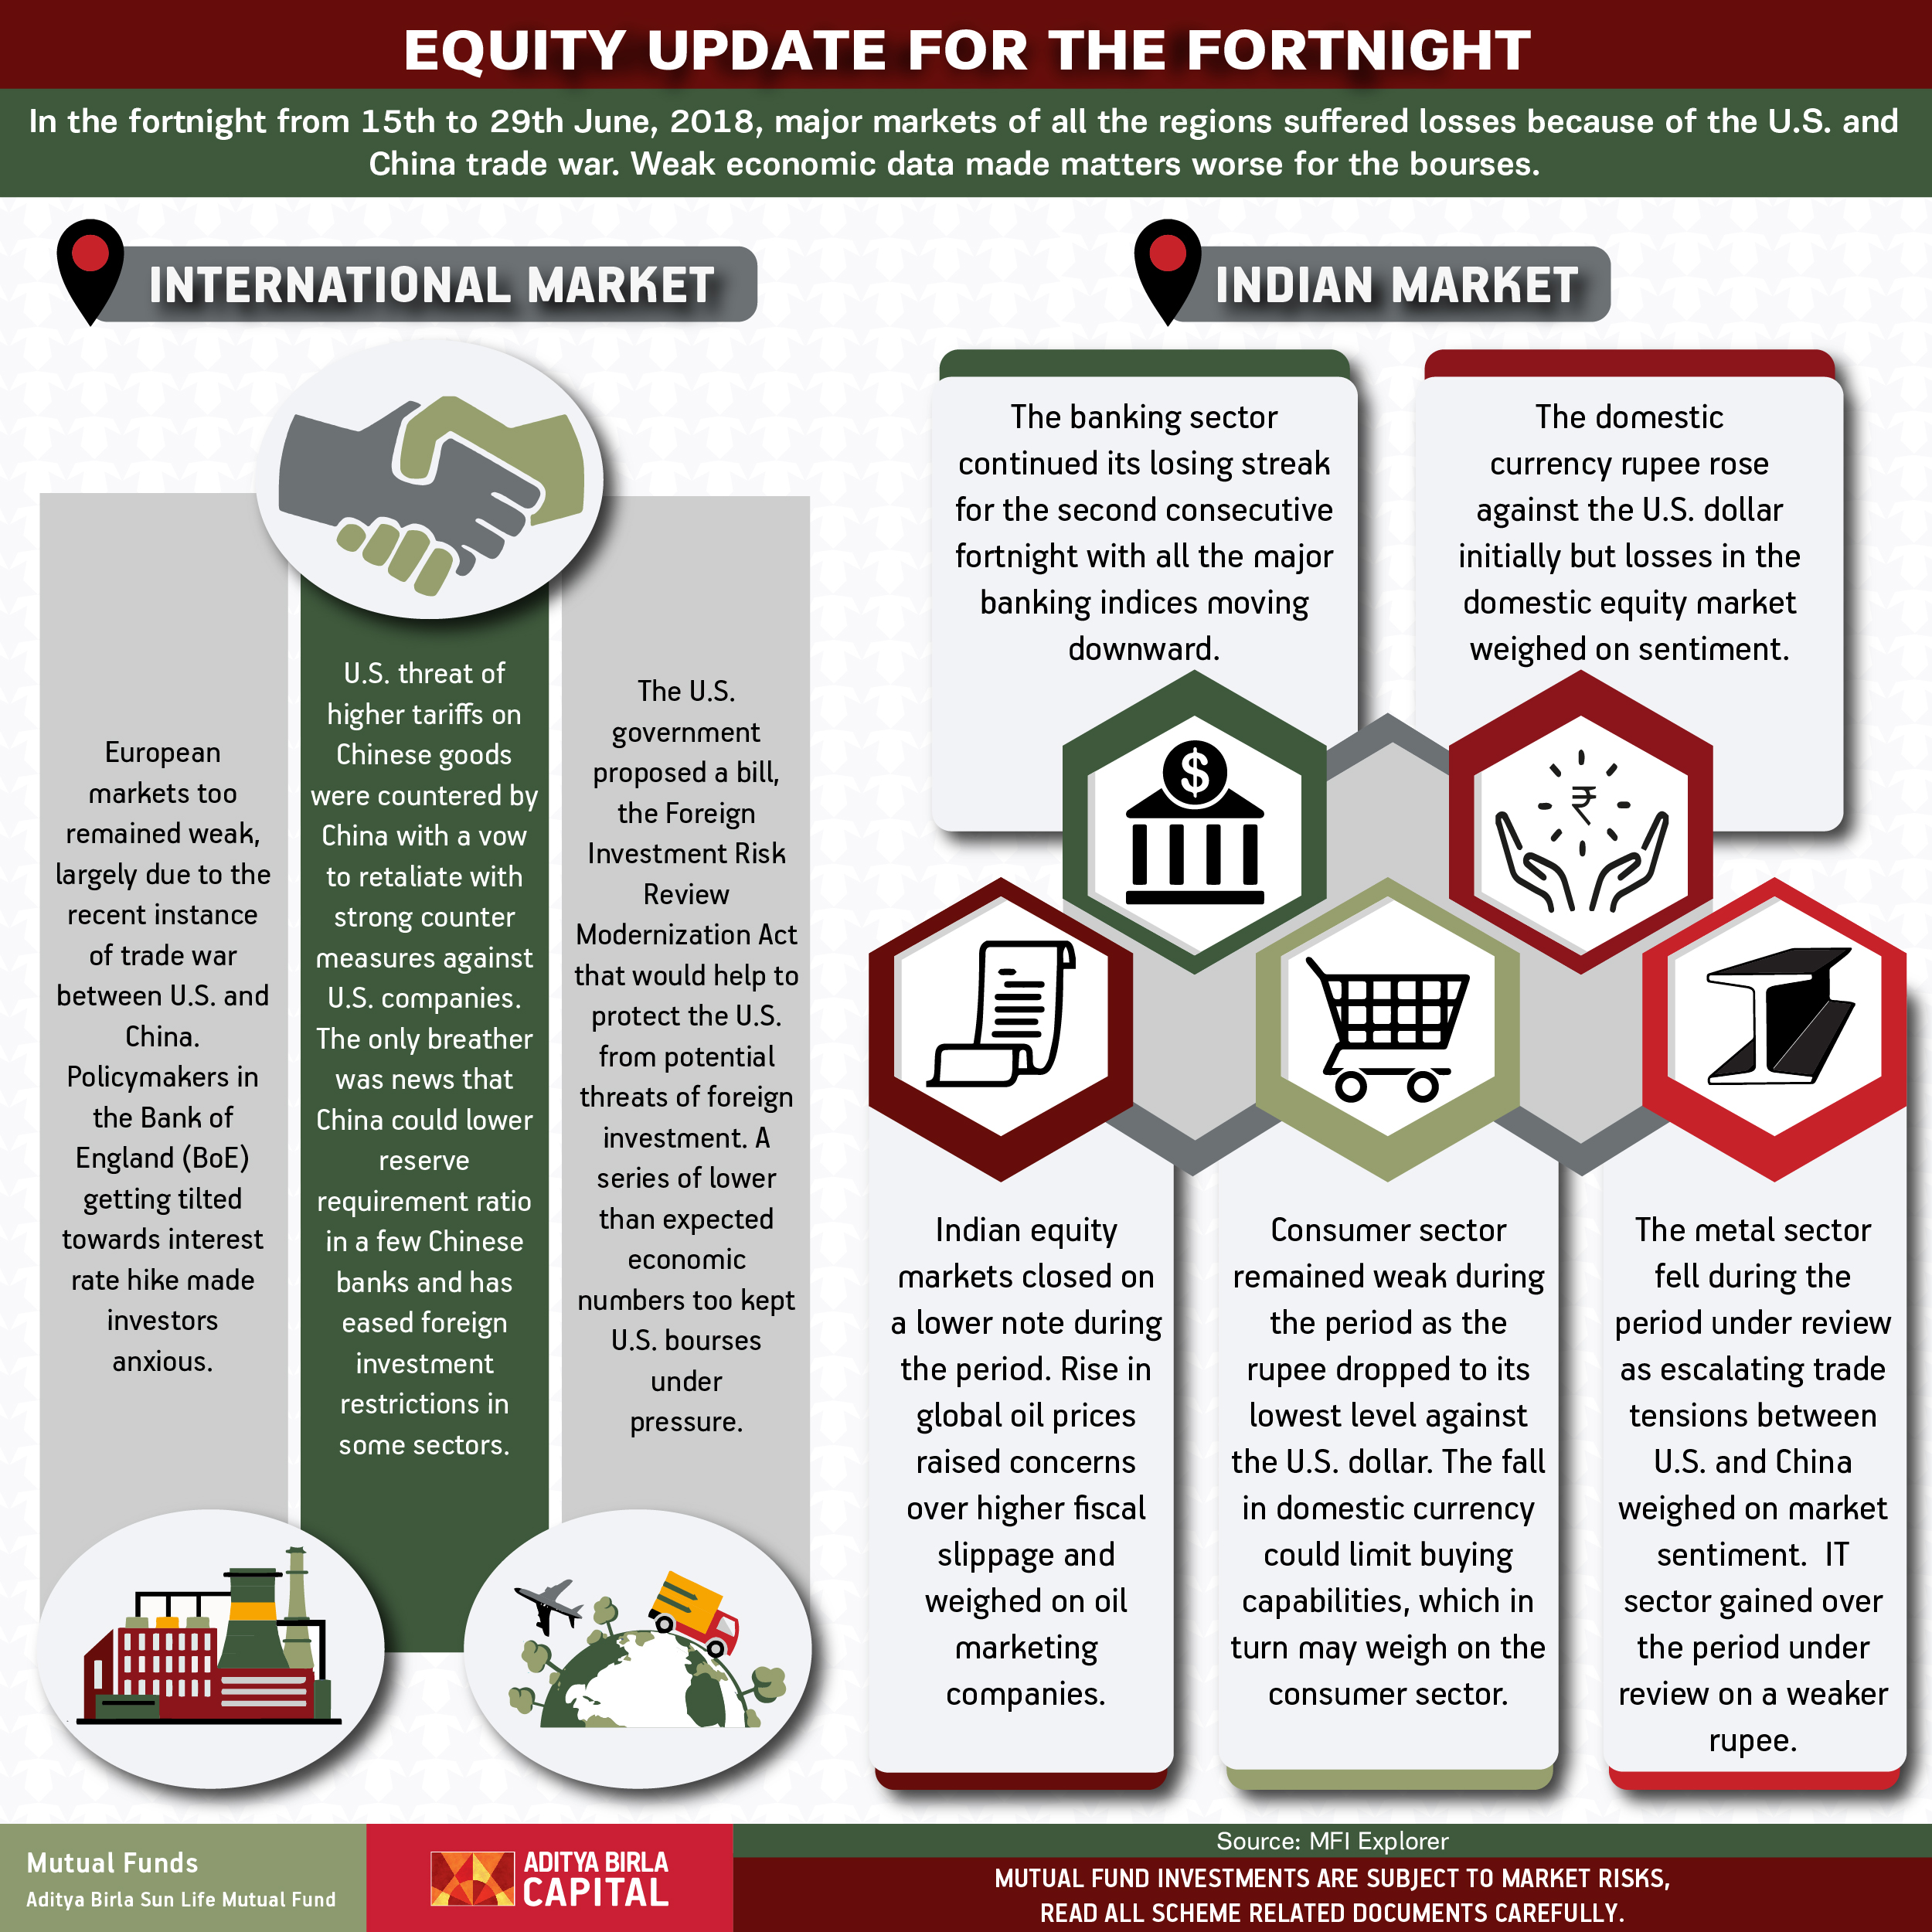 Equity Update for the Fortnight June'18 - II